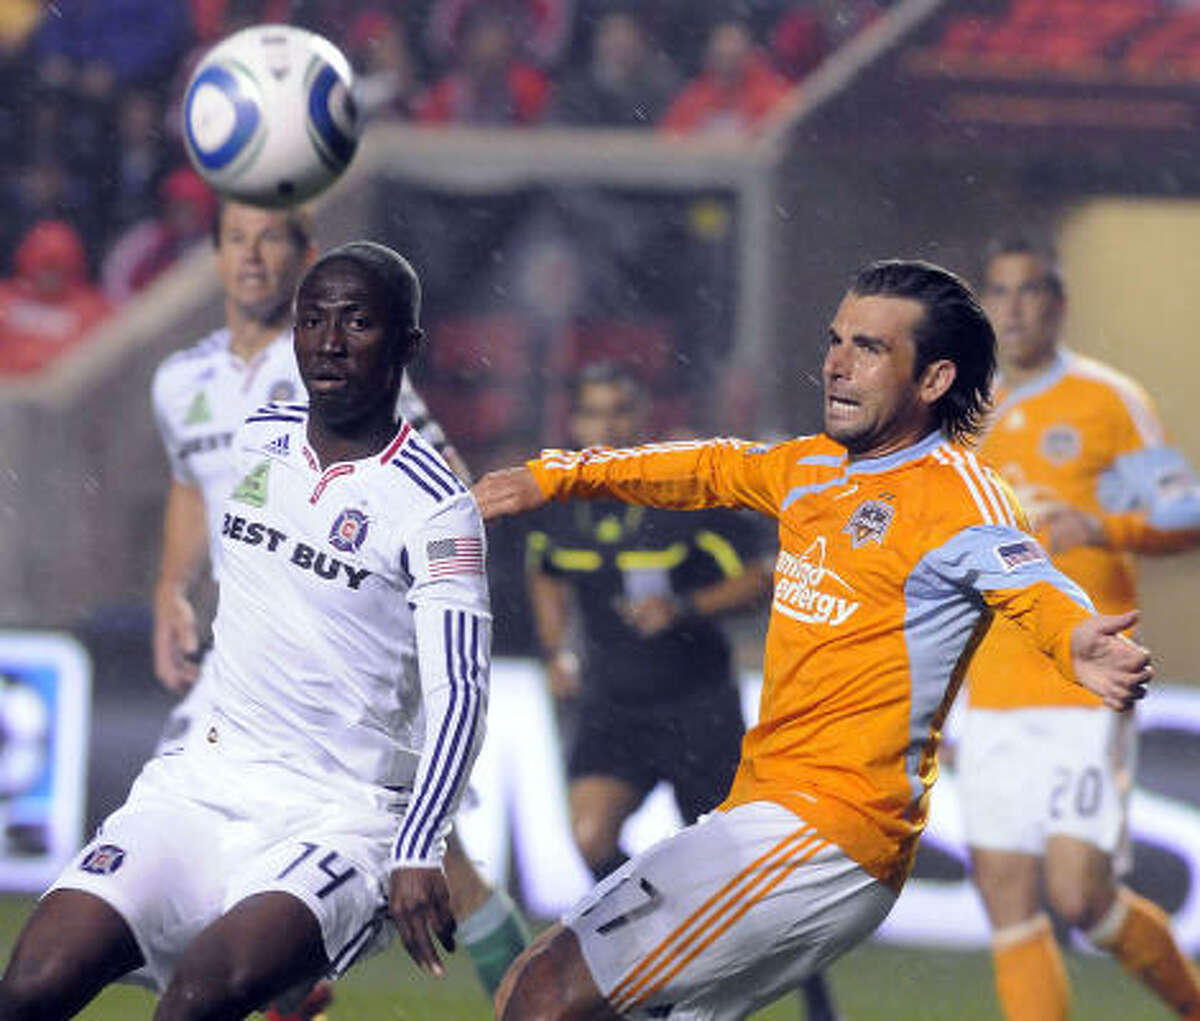 Chicago's Patrick Nyarko, left, and Dynamo defender Mike Chabala battle for a loose ball in Saturday's match. The Dynamo fell 2-0.